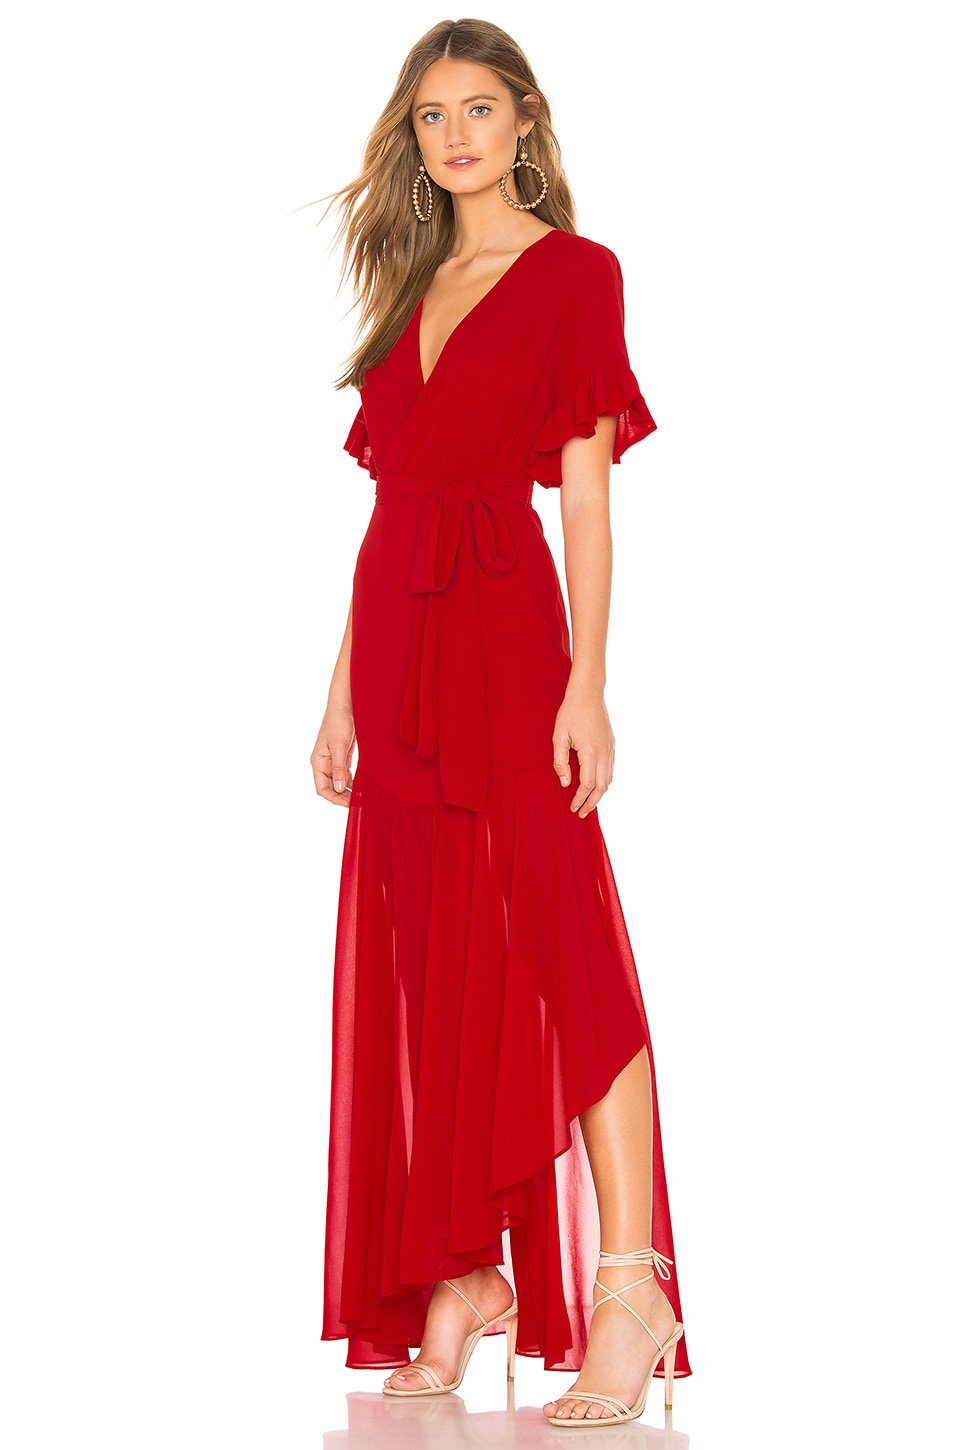 Privacy Please Chrysanthemum Gown in Red Lobster